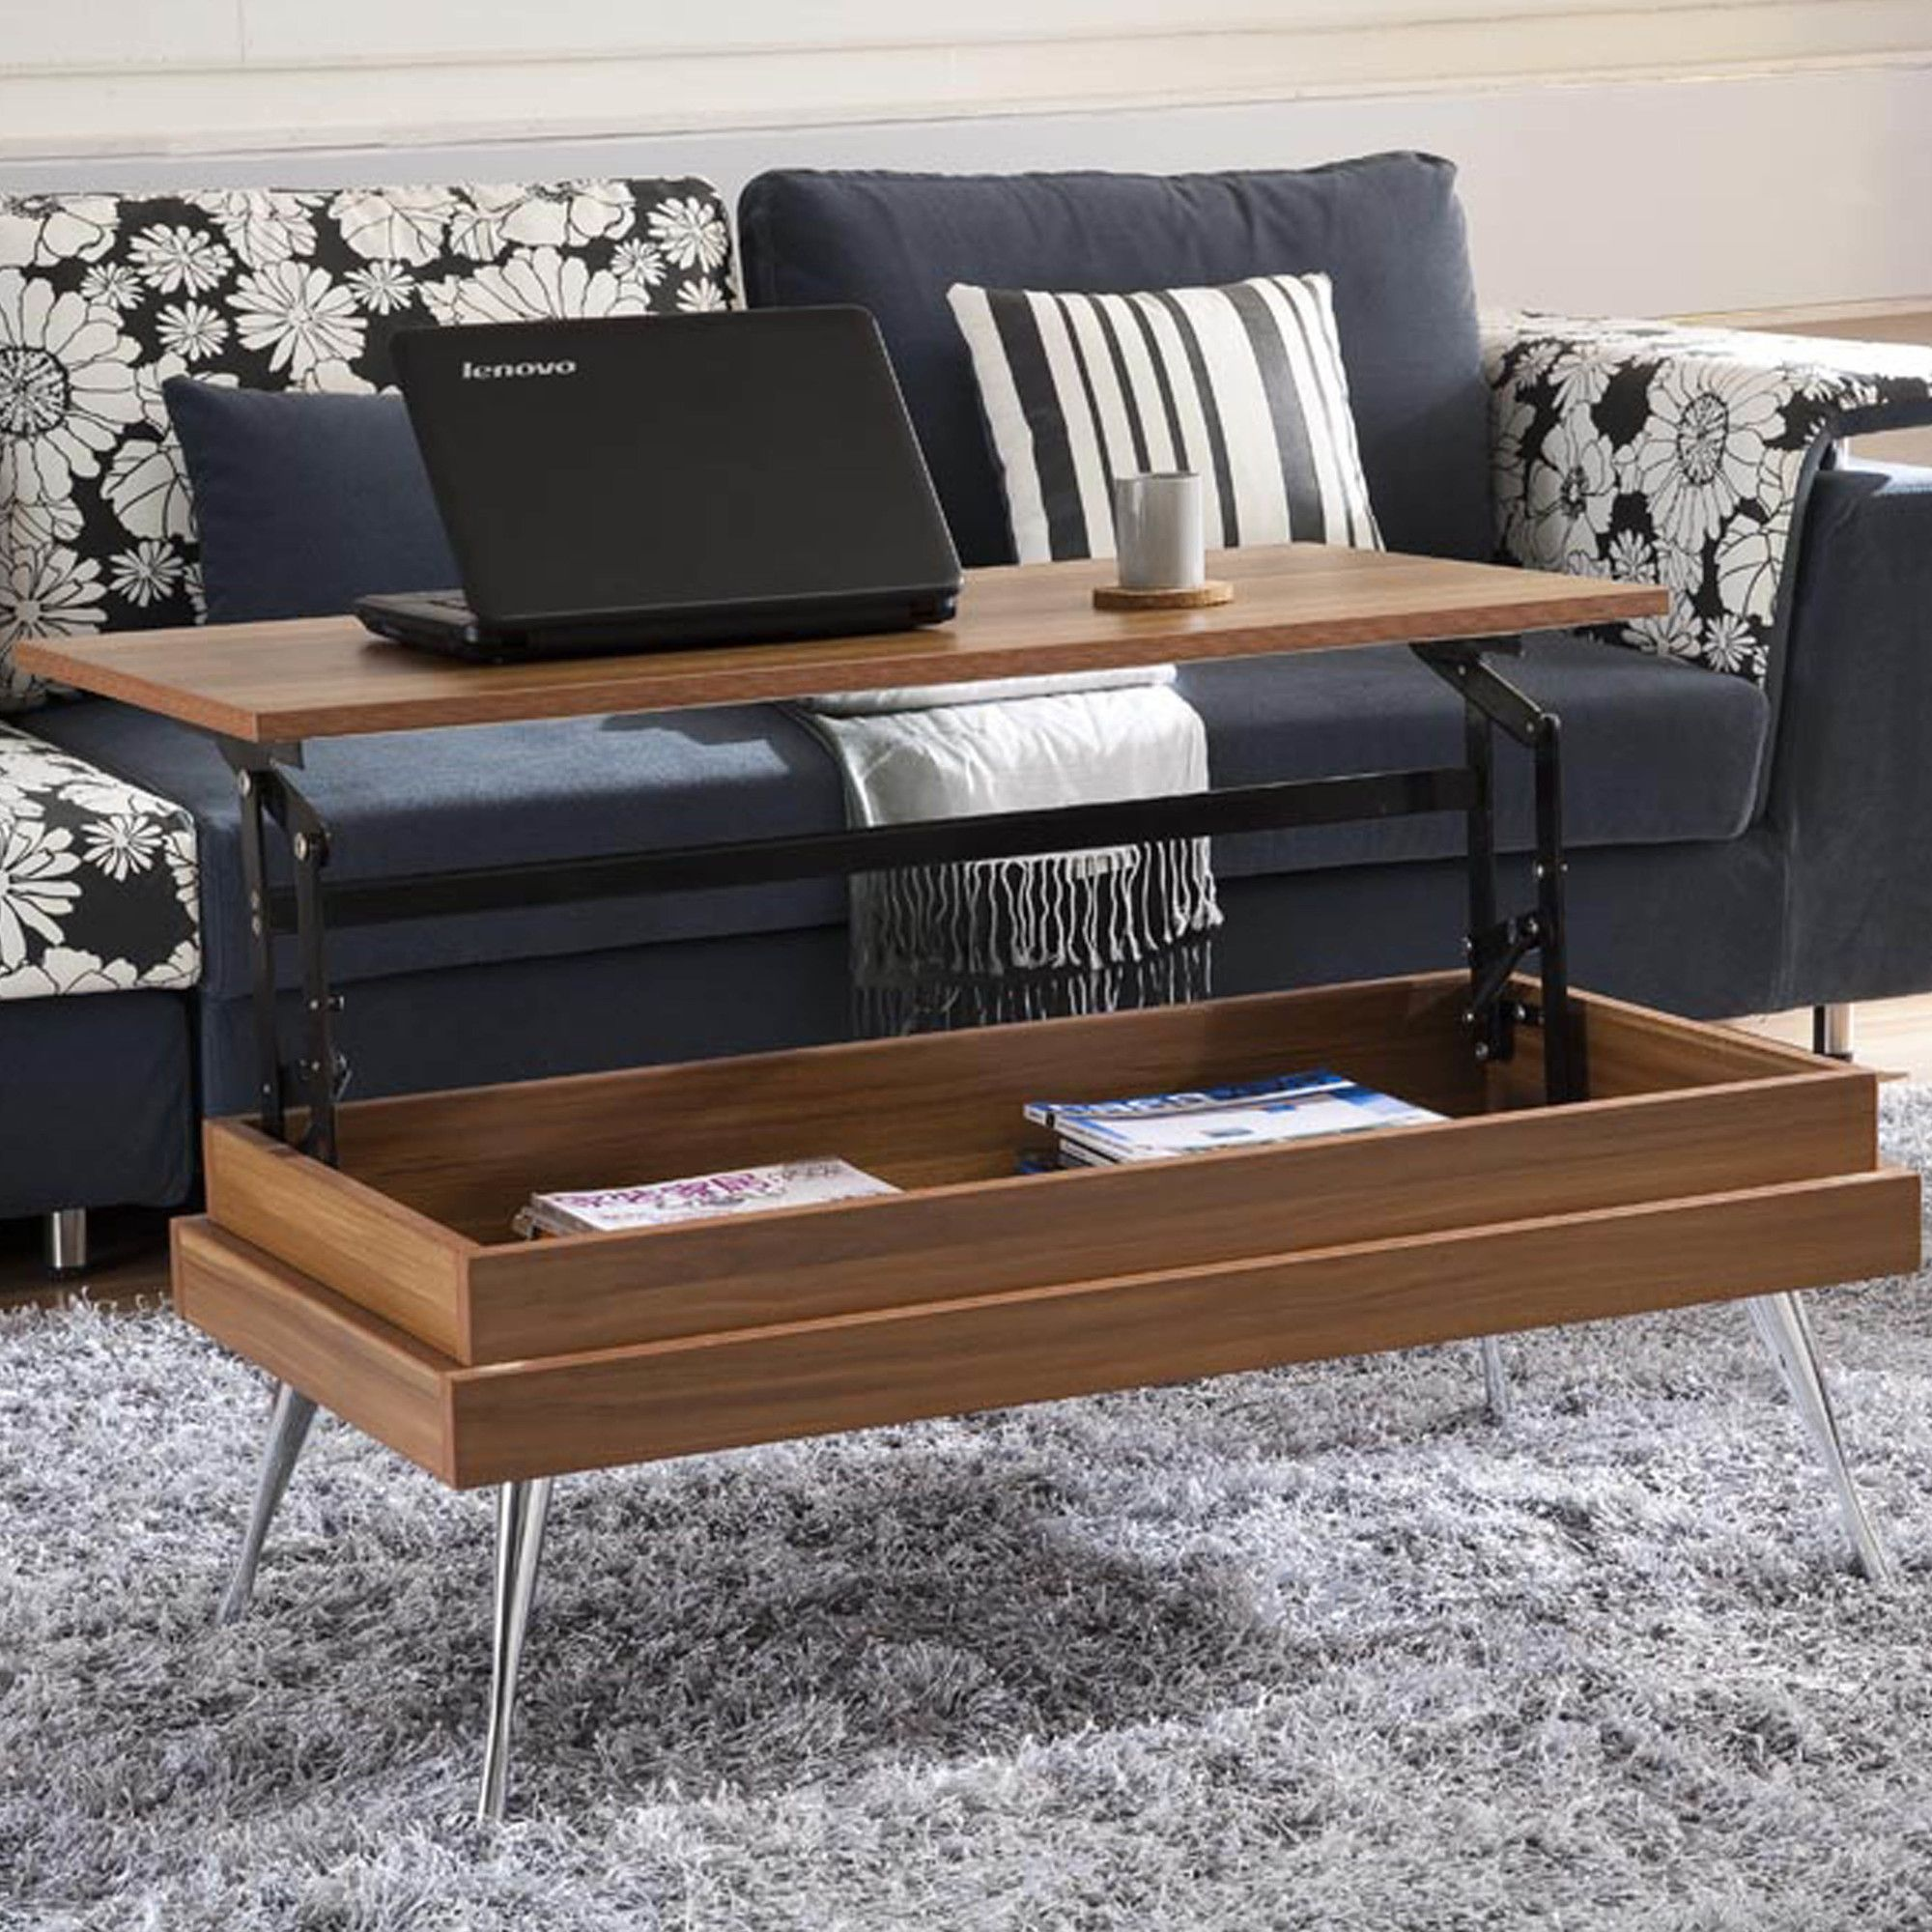 Similar To The West Elm Coffee Table Though Smaller It S Less